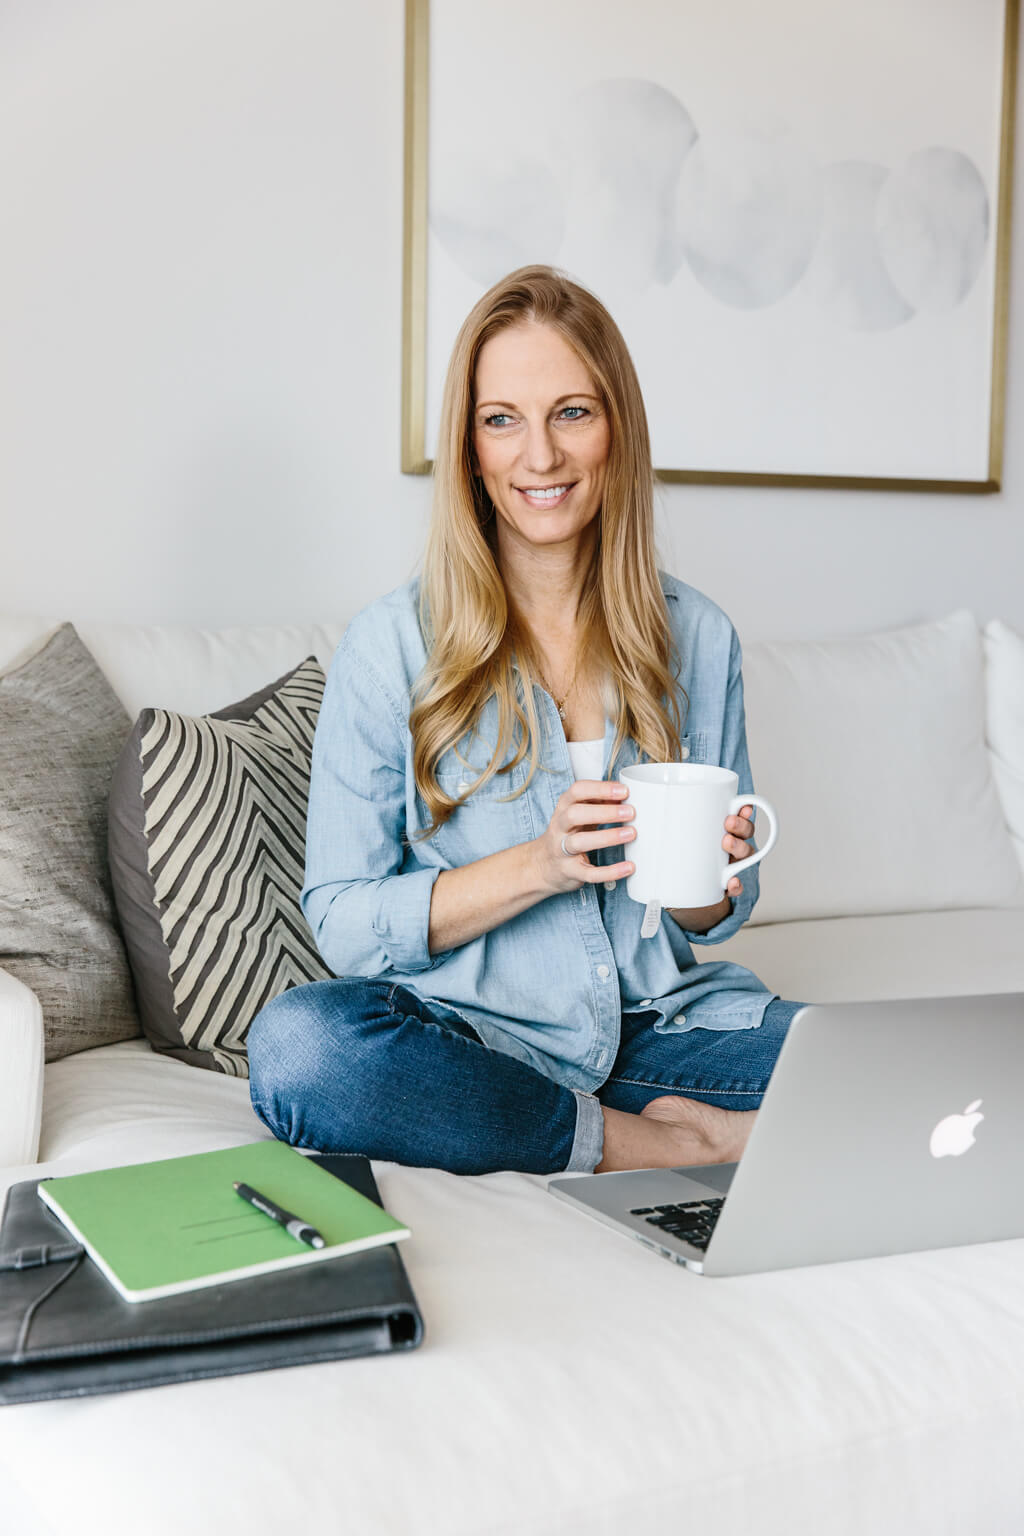 As a health coach who's been able to create a rewarding and successful health coaching business in just three years, I have 5 tips for success to share.